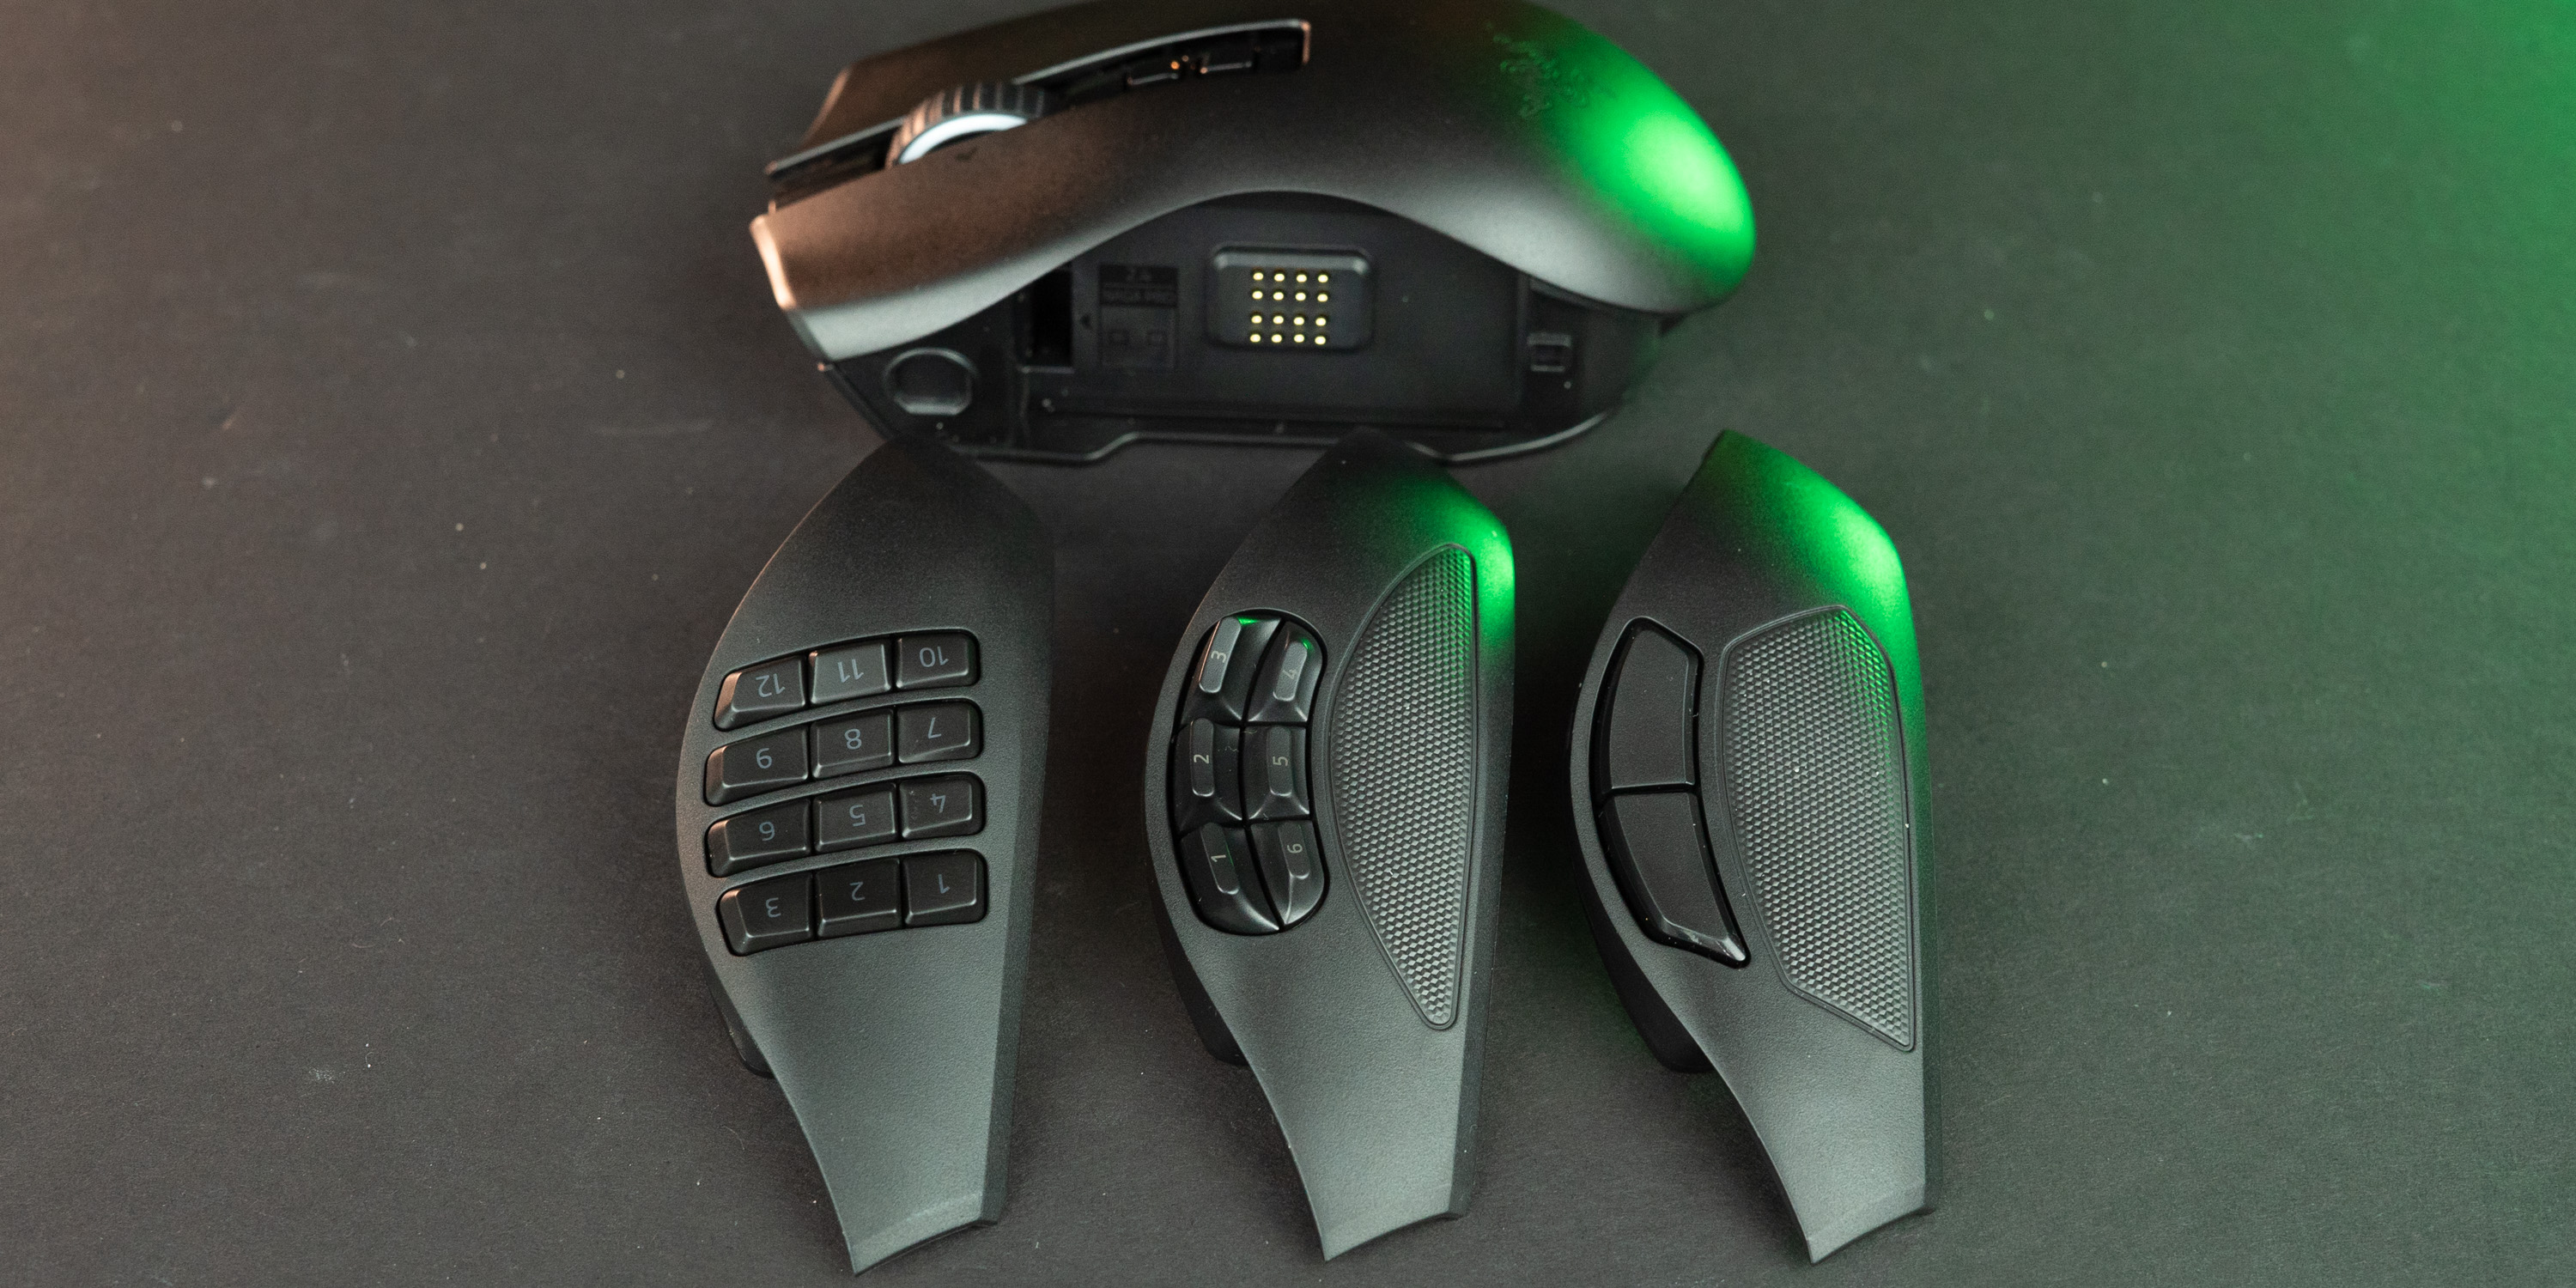 Swappable side plates on the Razer Naga Pro